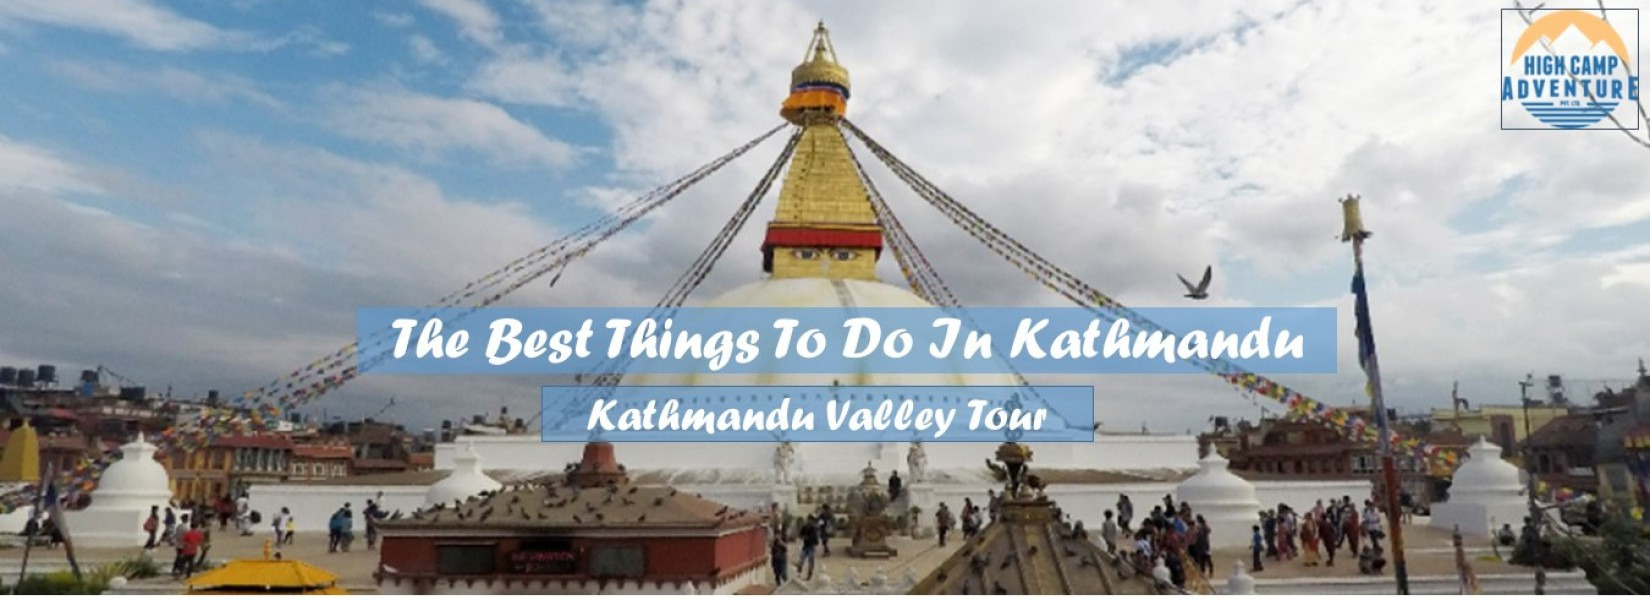 The Best Things To Do In Kathmandu